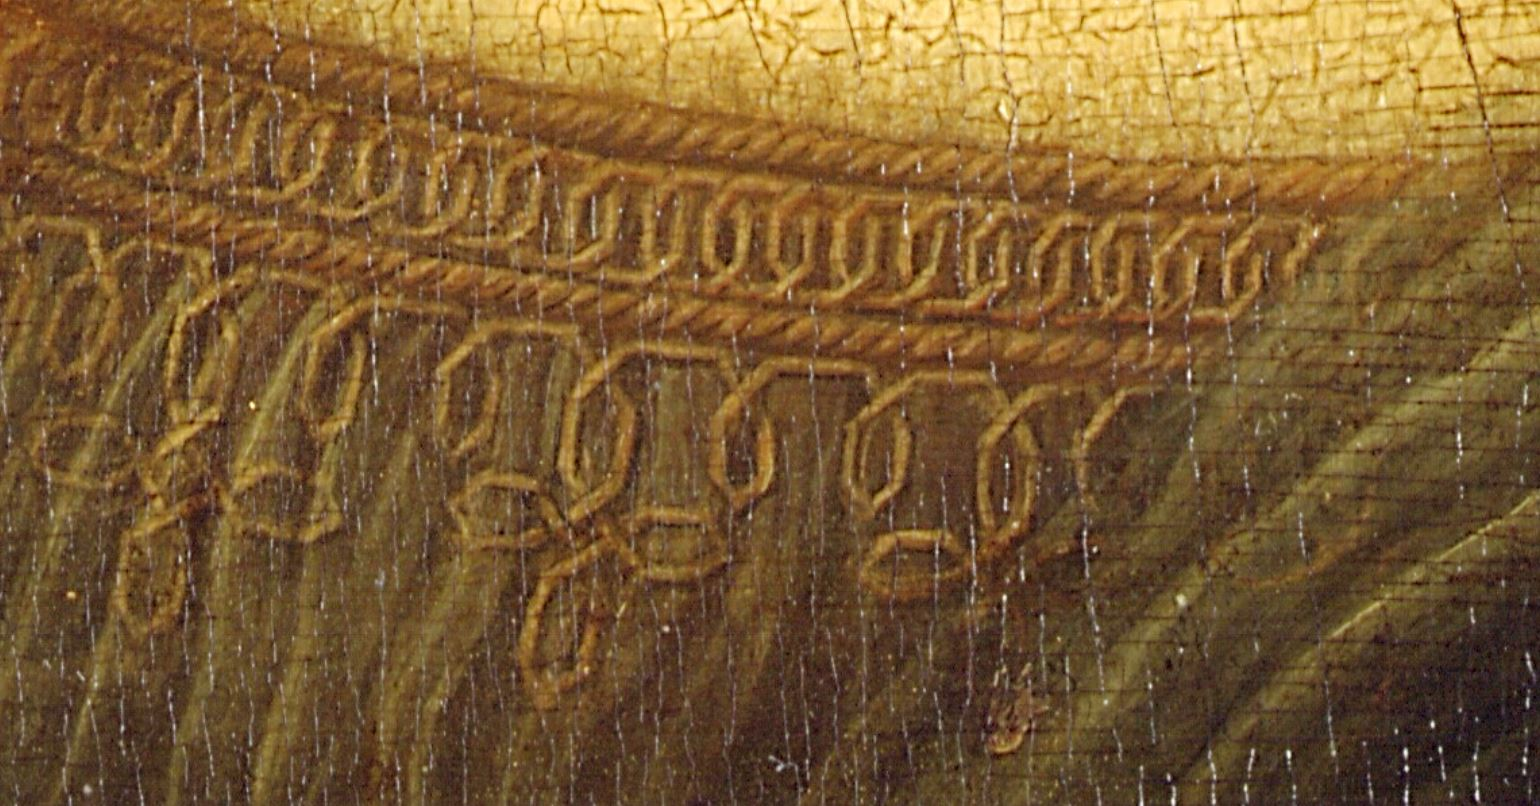 Detail from Mona Lisa, wikipedia